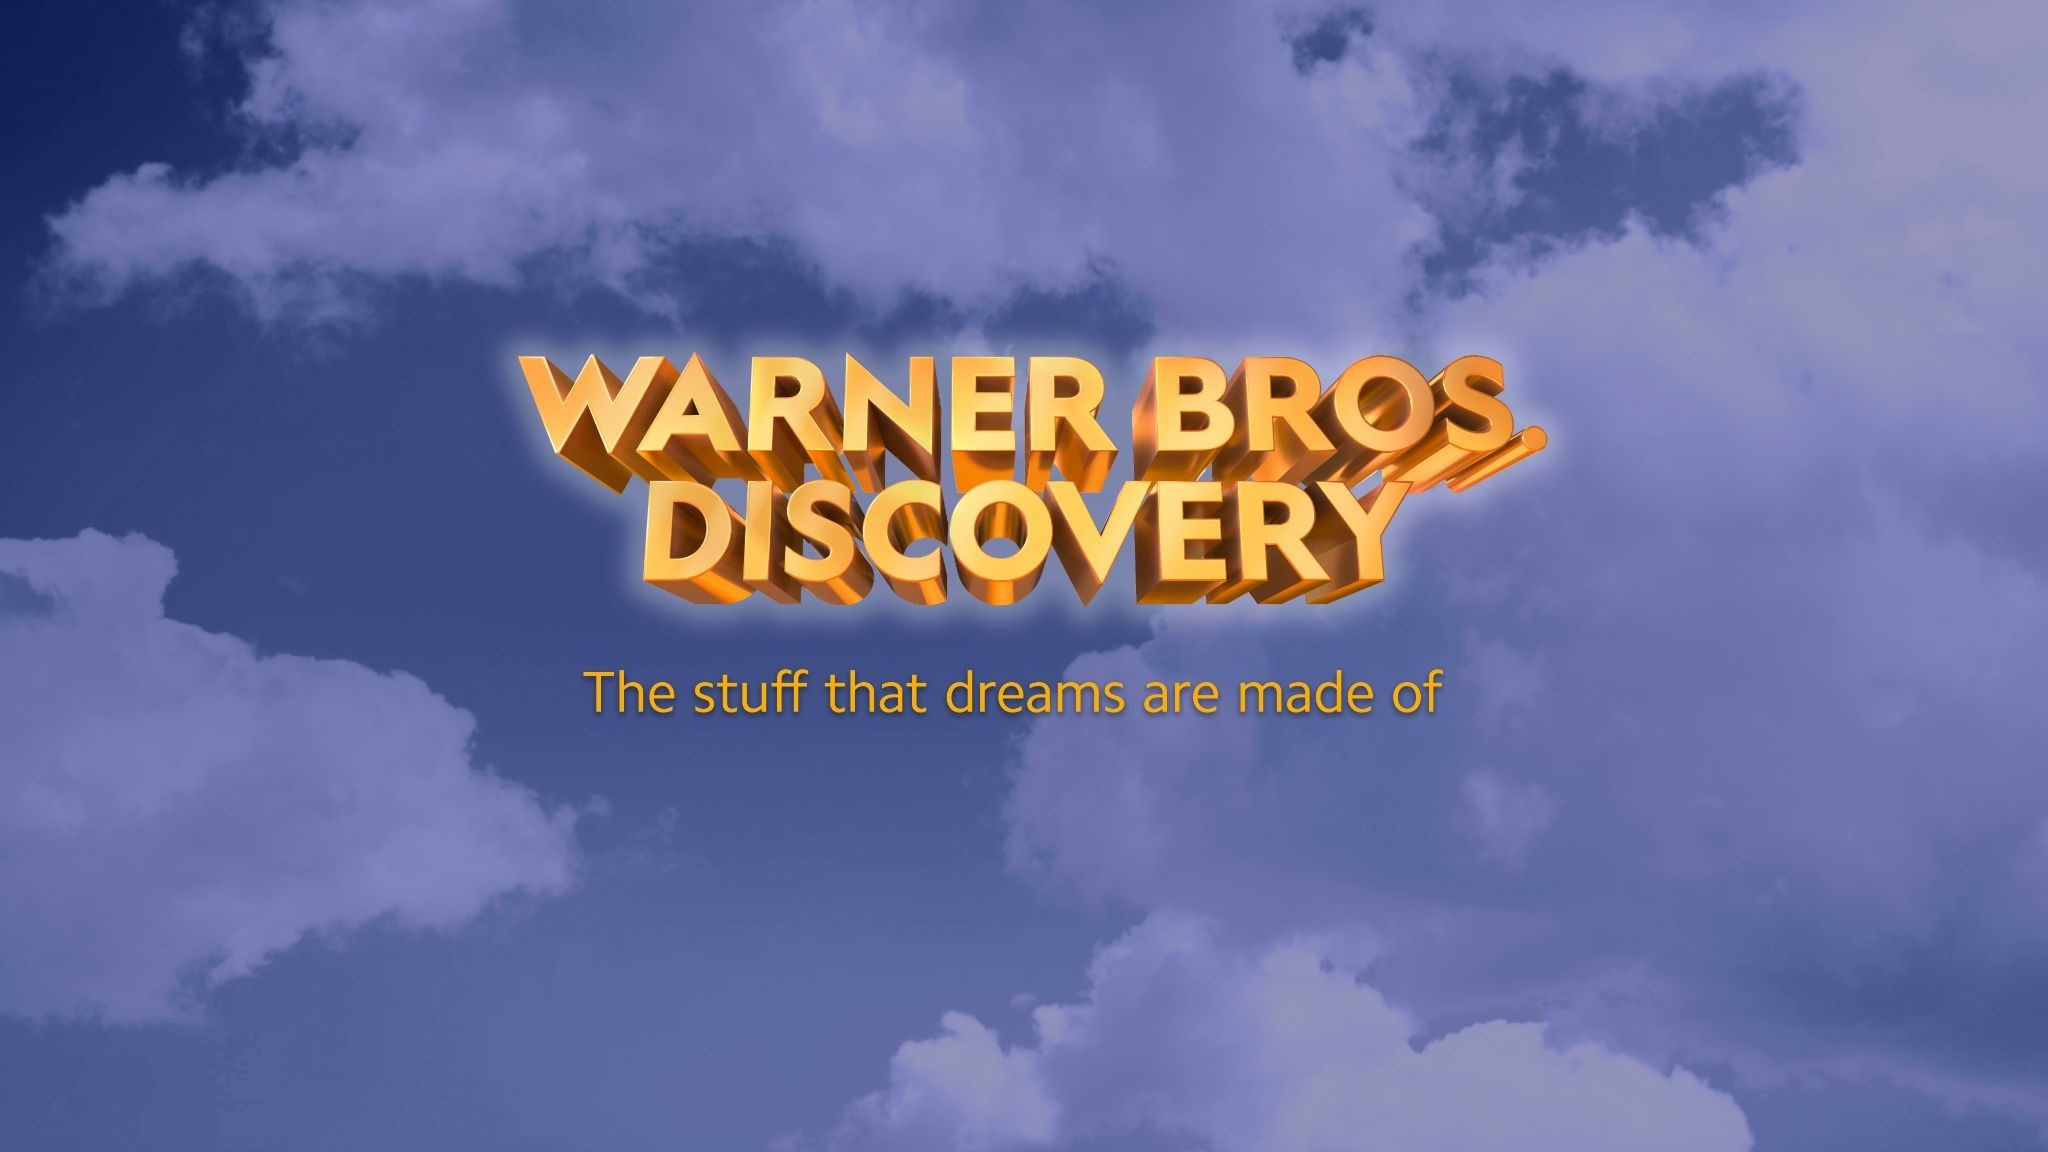 Discovery-WarnerMedia merger getting no pushback, CEO says